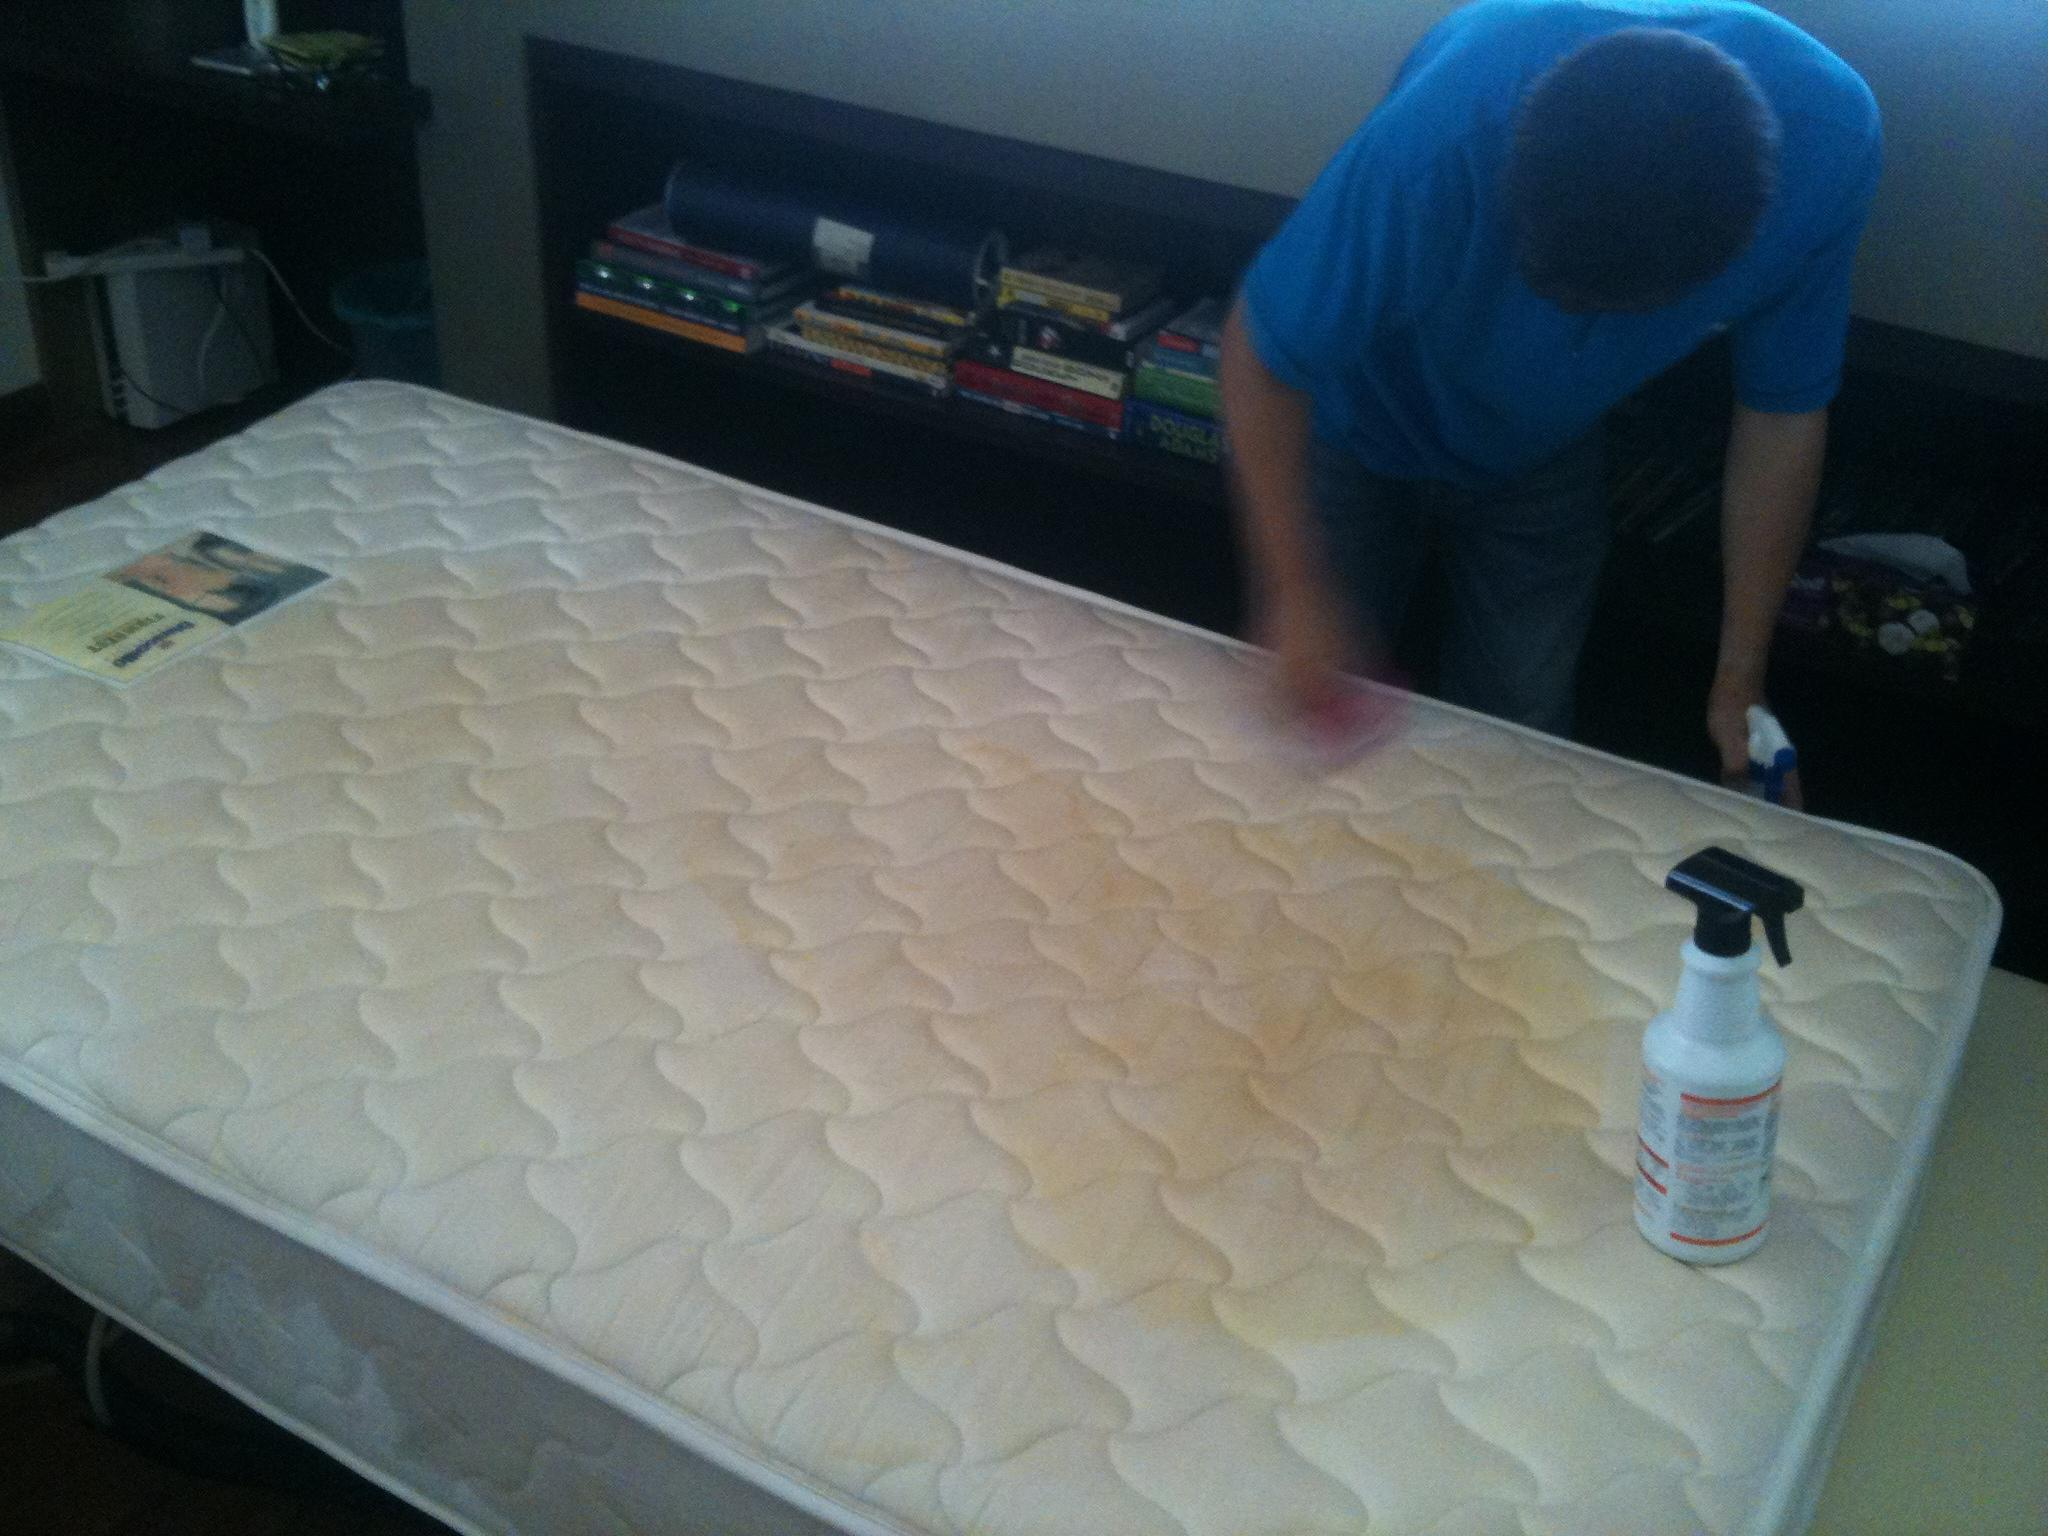 mattress who should review sleep endy line buy scouts view side free bottom removal this